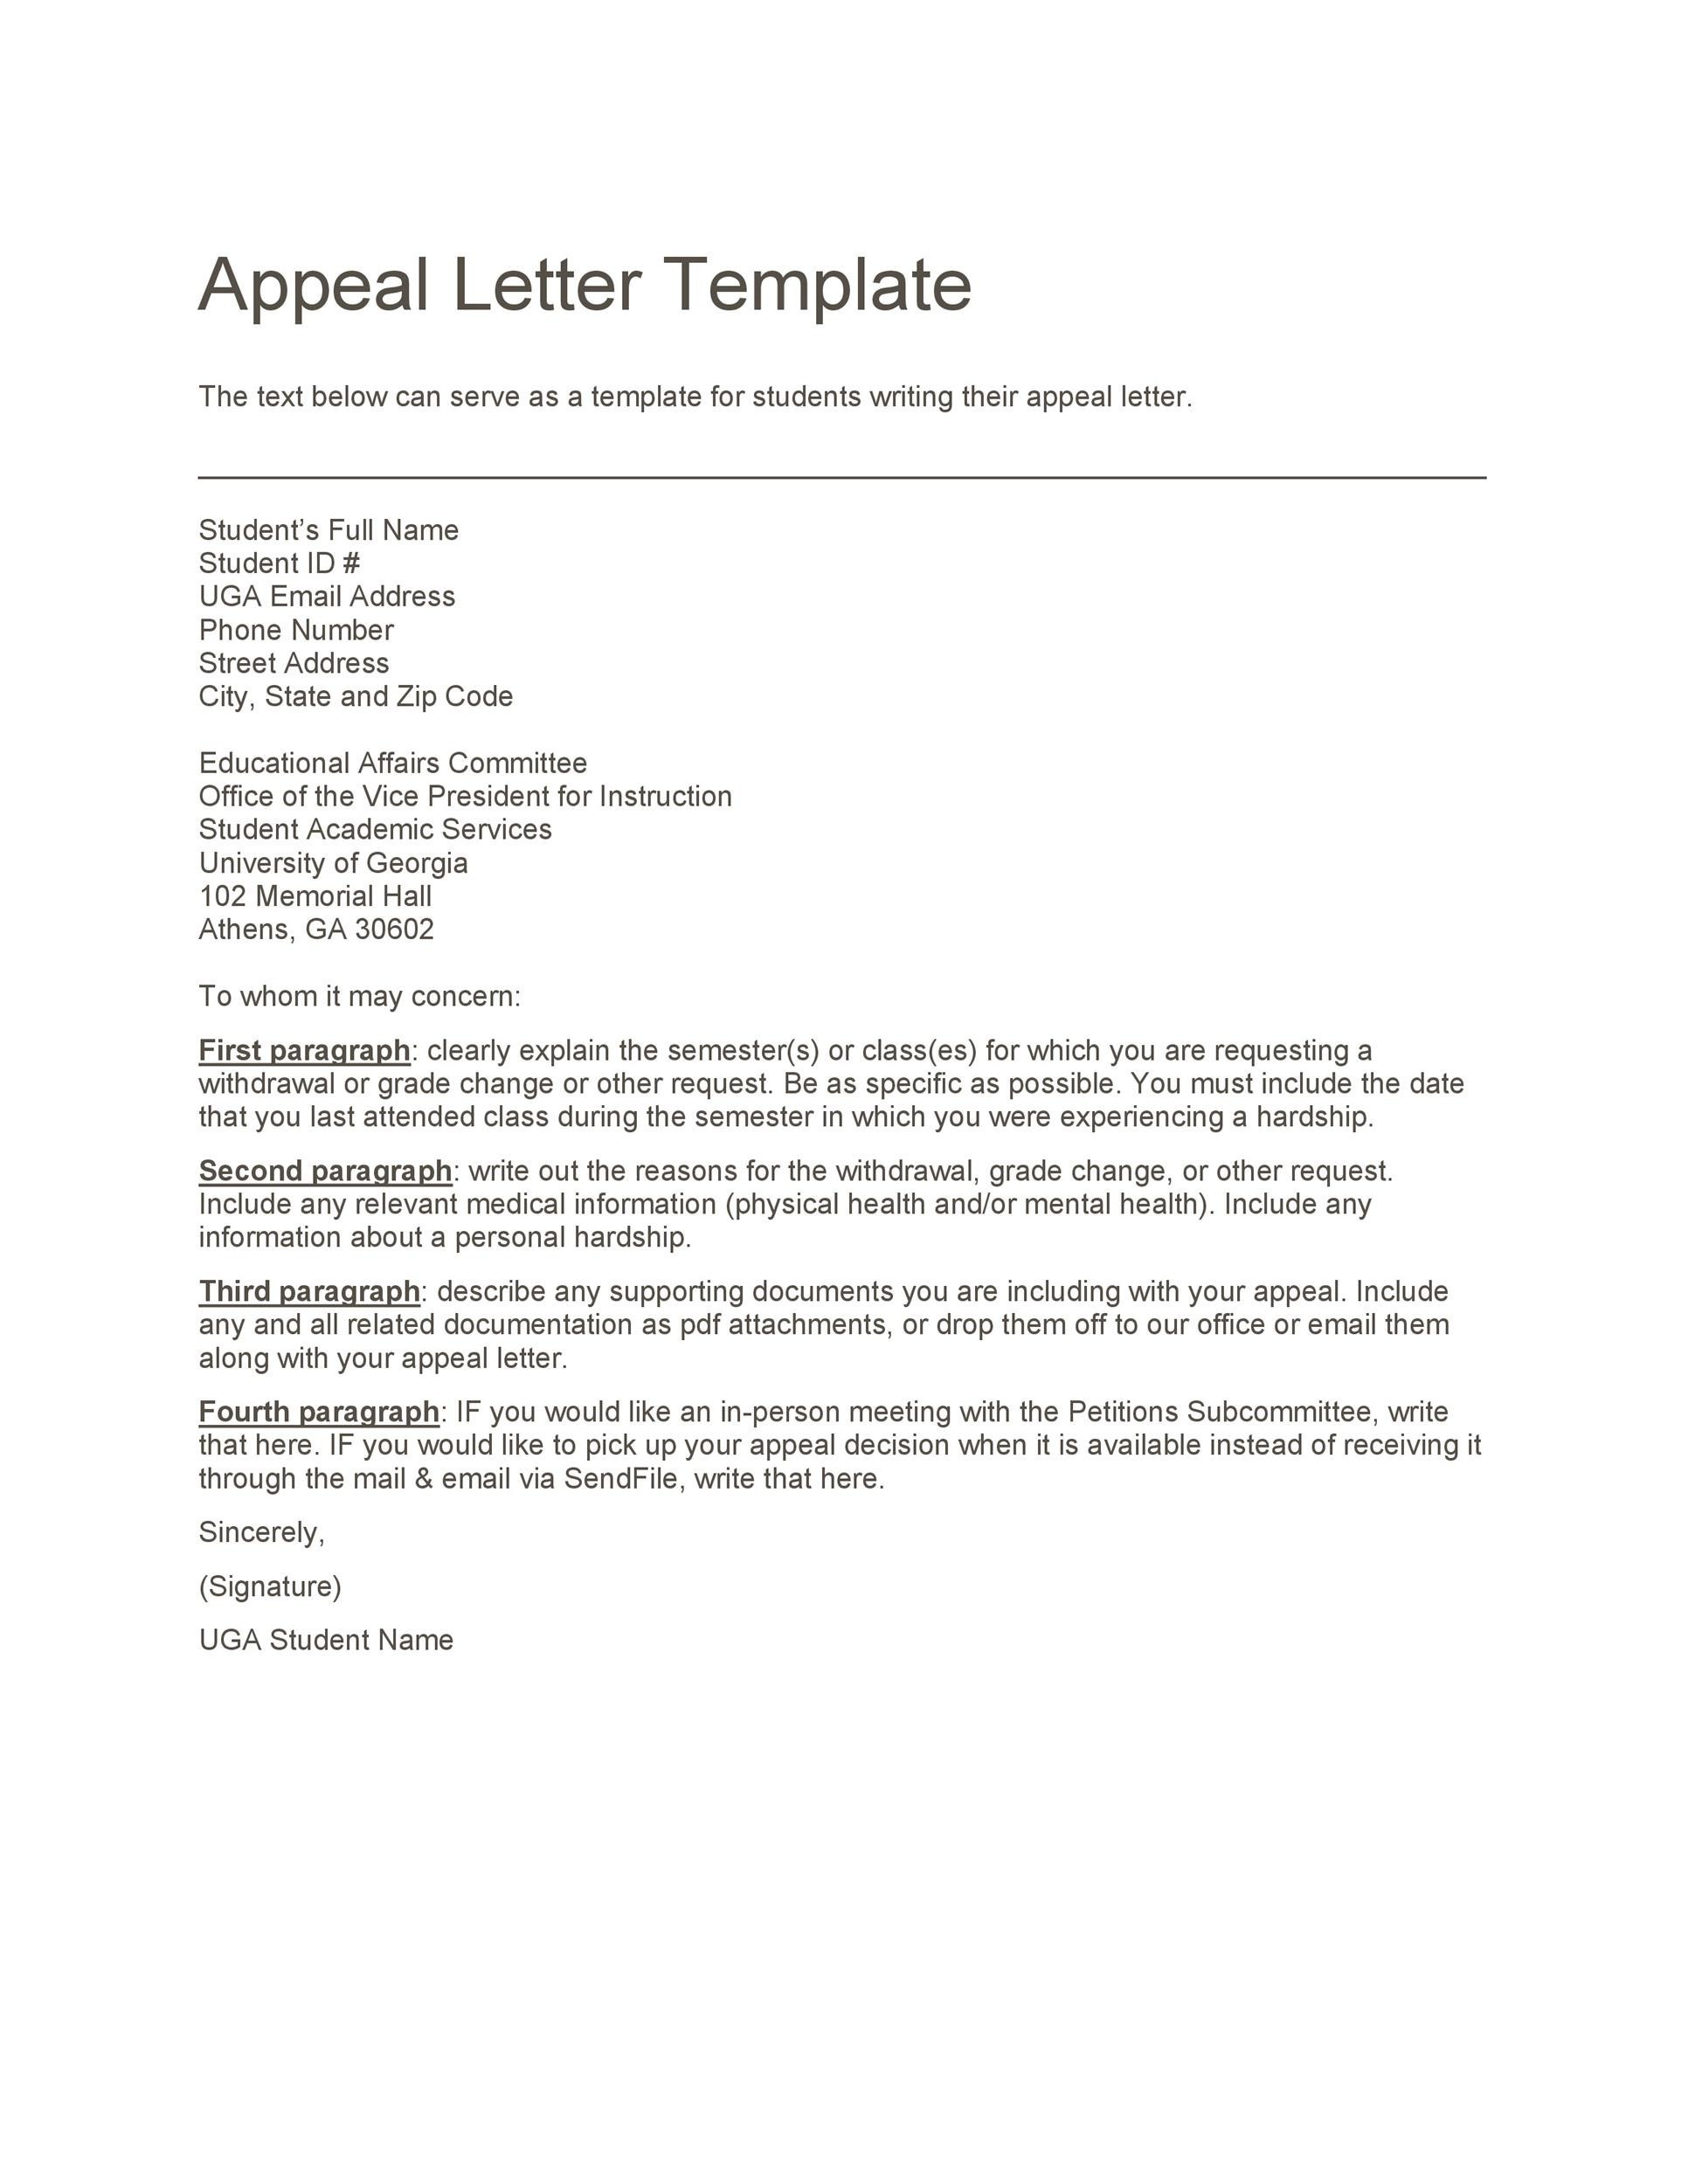 Free appeal letter 20